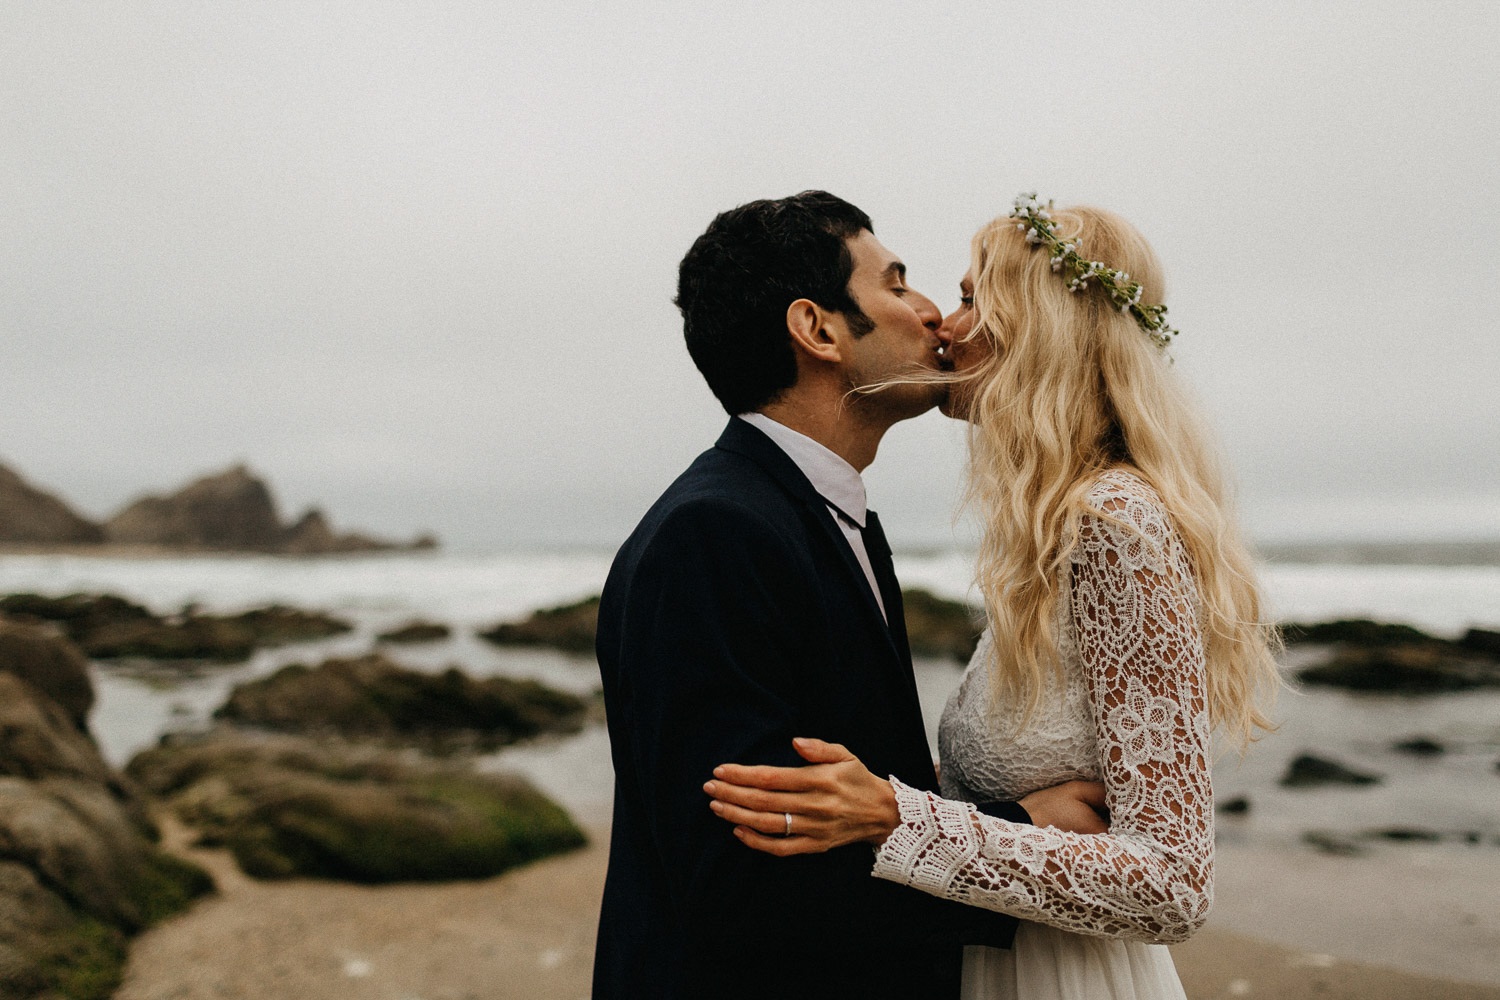 Image of groom kisses bride on lips